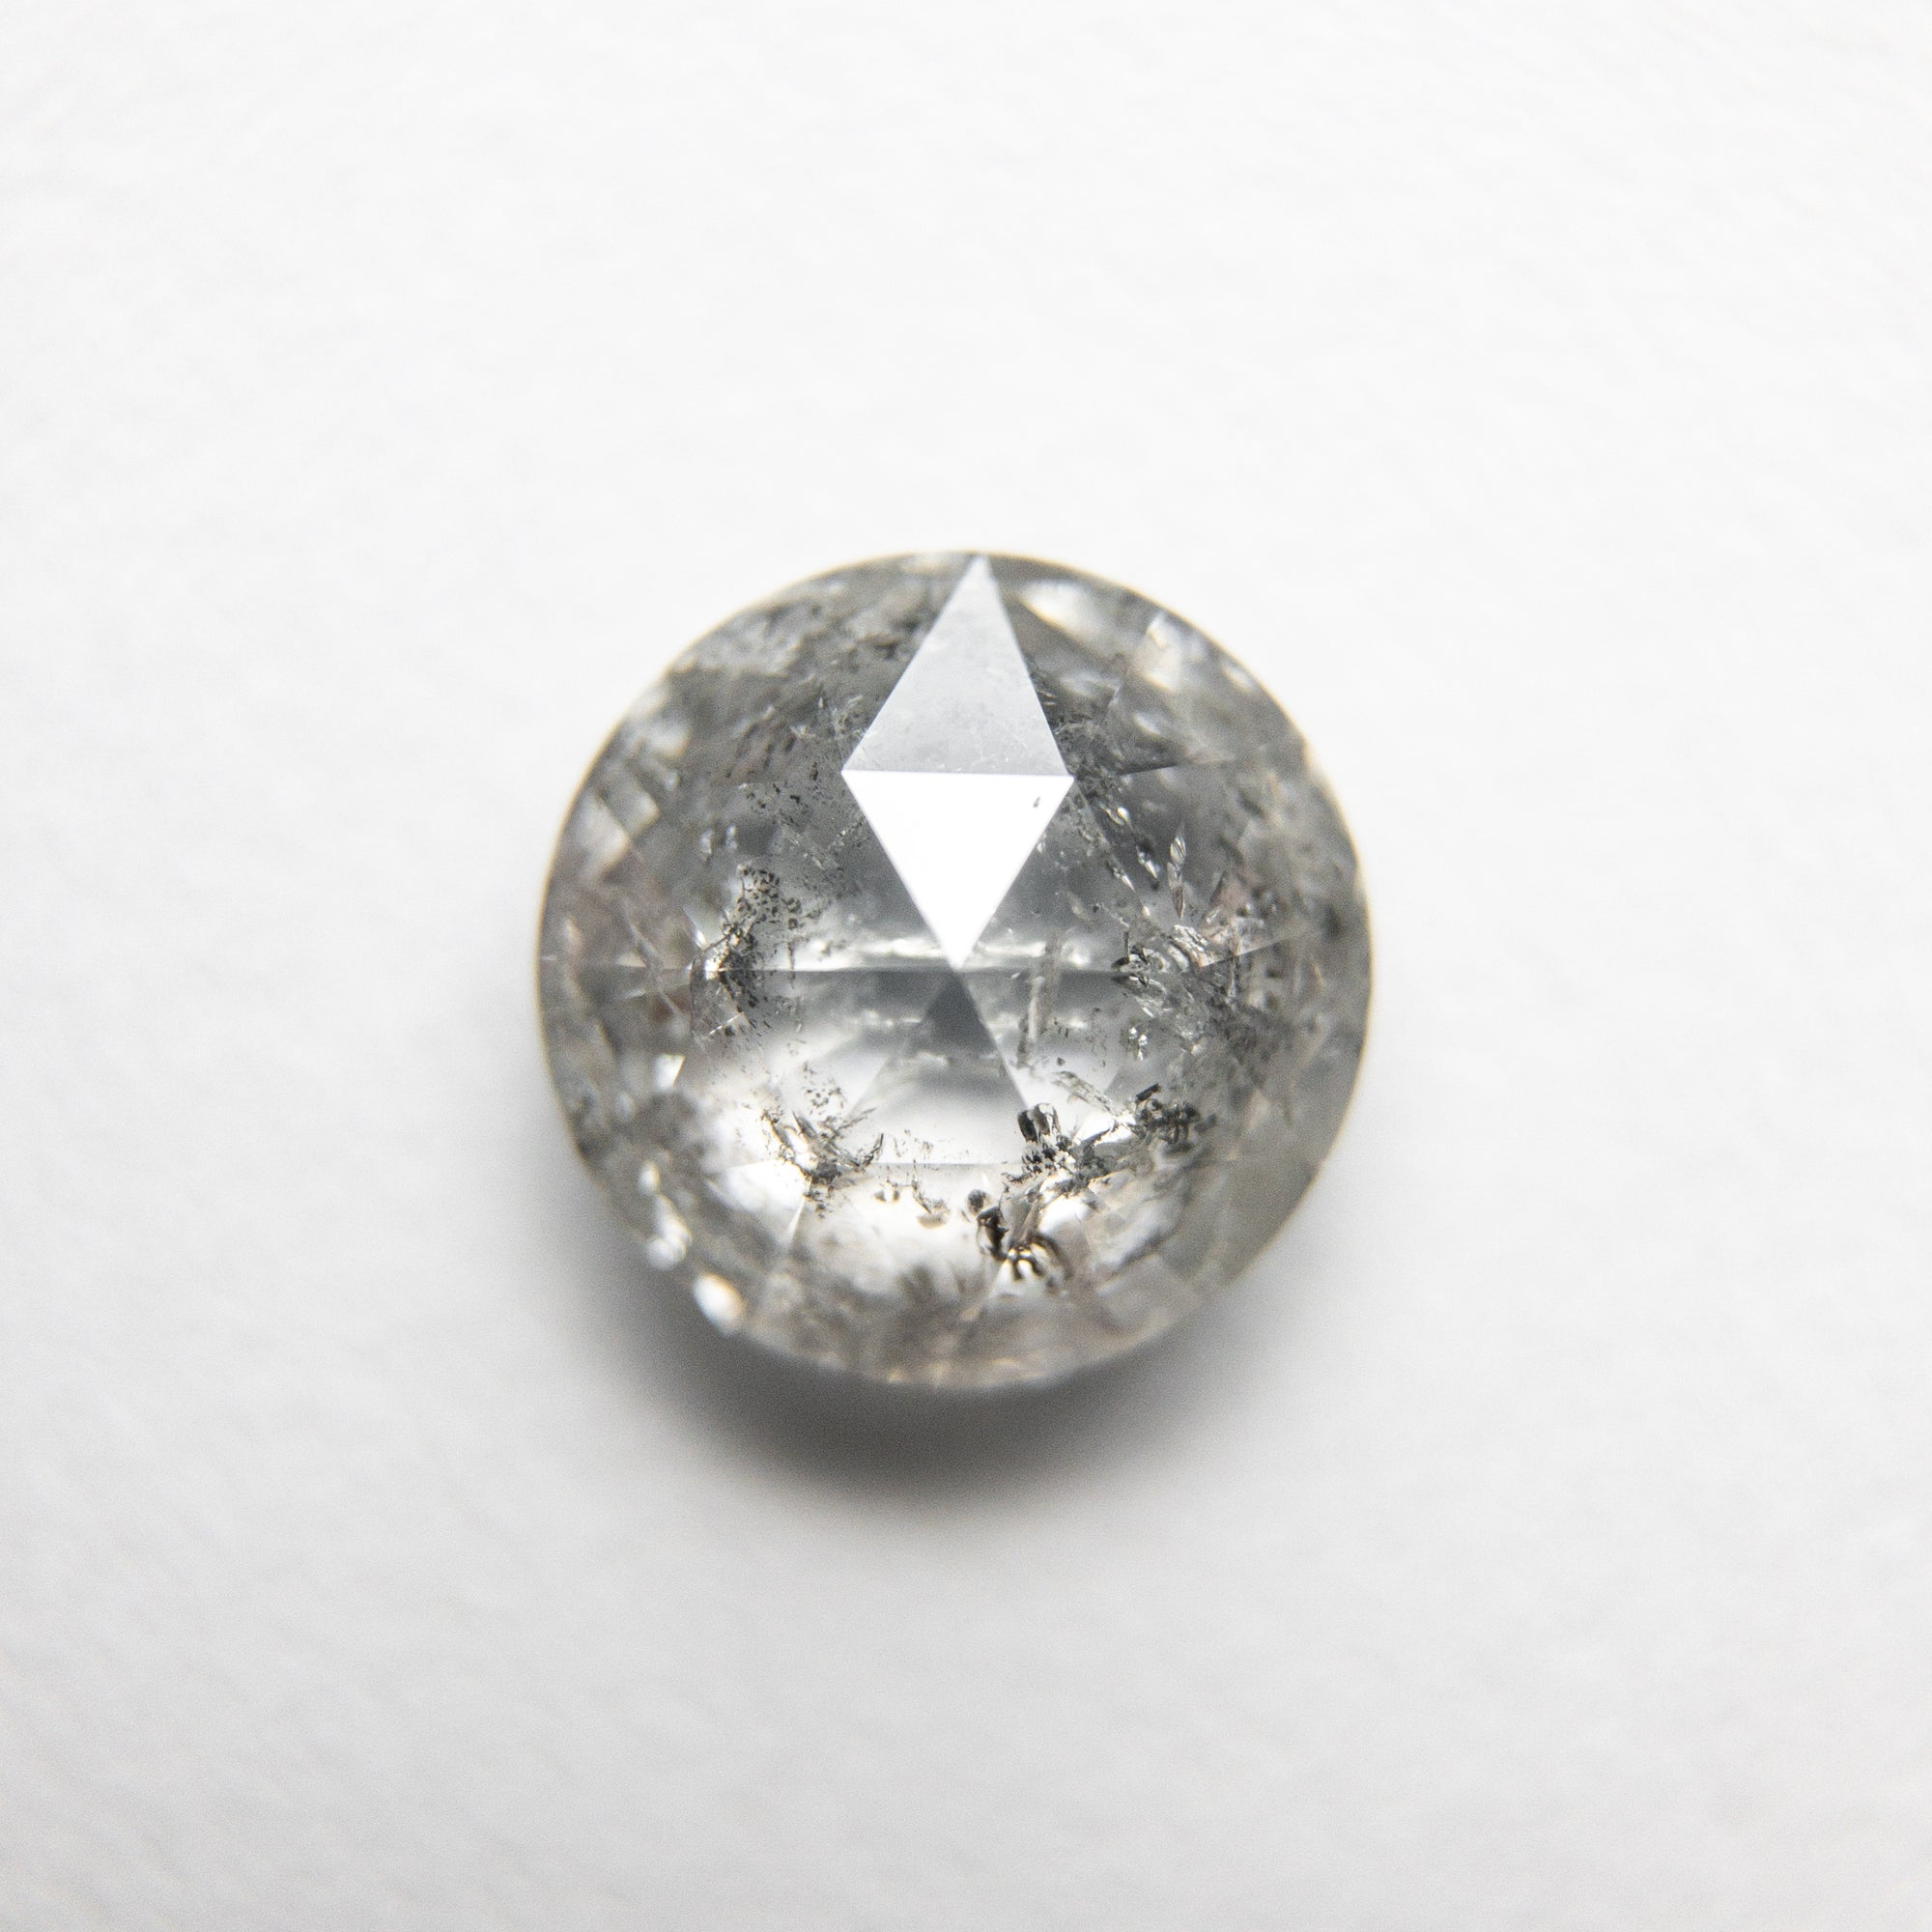 1.25ct 6.99x6.97x3.40mm Round Double Cut 18094-25